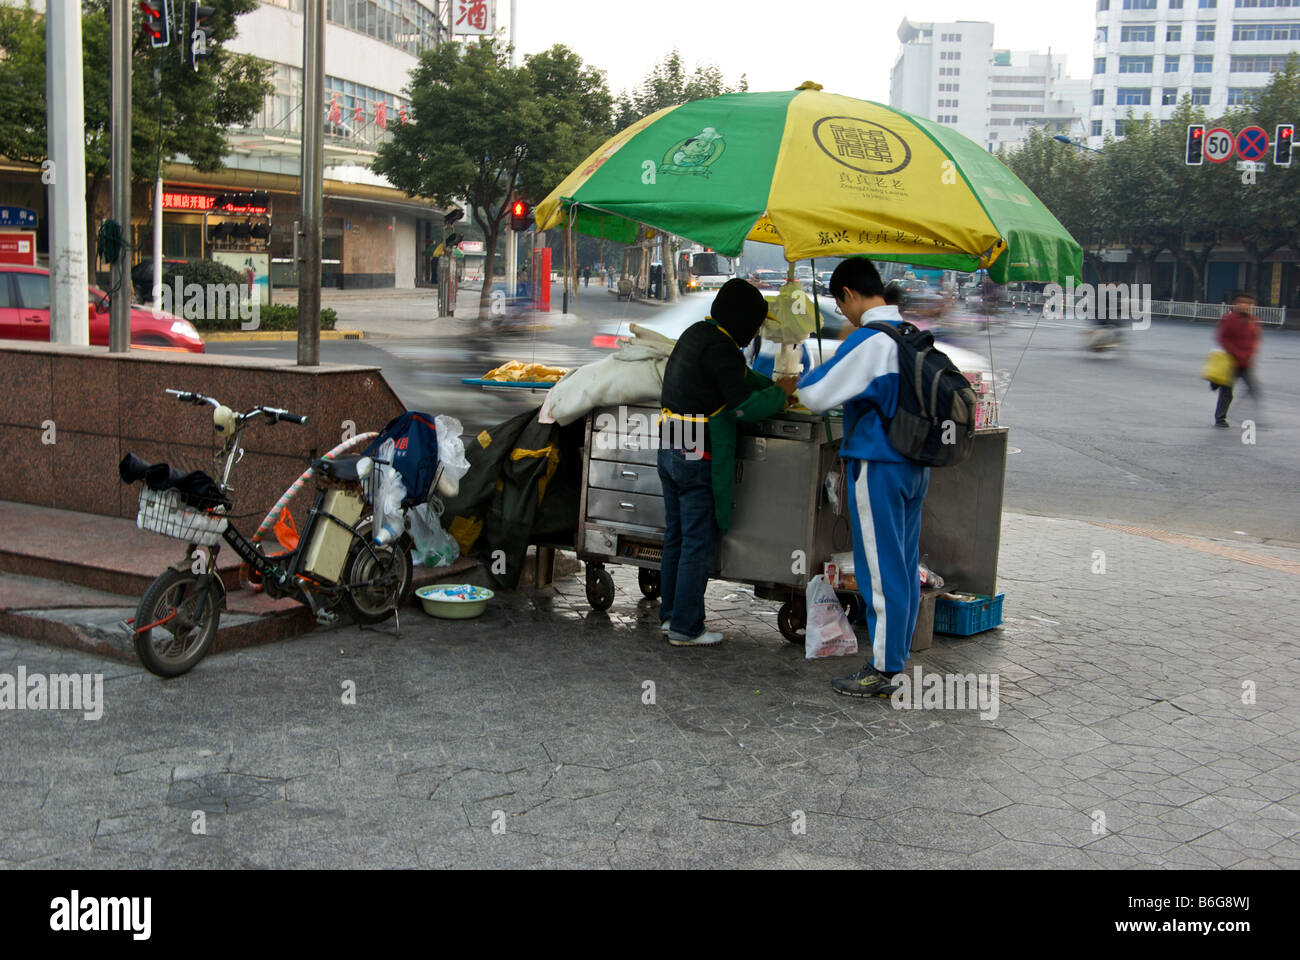 School boy buying breakfast from roadside food vendor stall on downtown street corner with busy traffic in motion Stock Photo